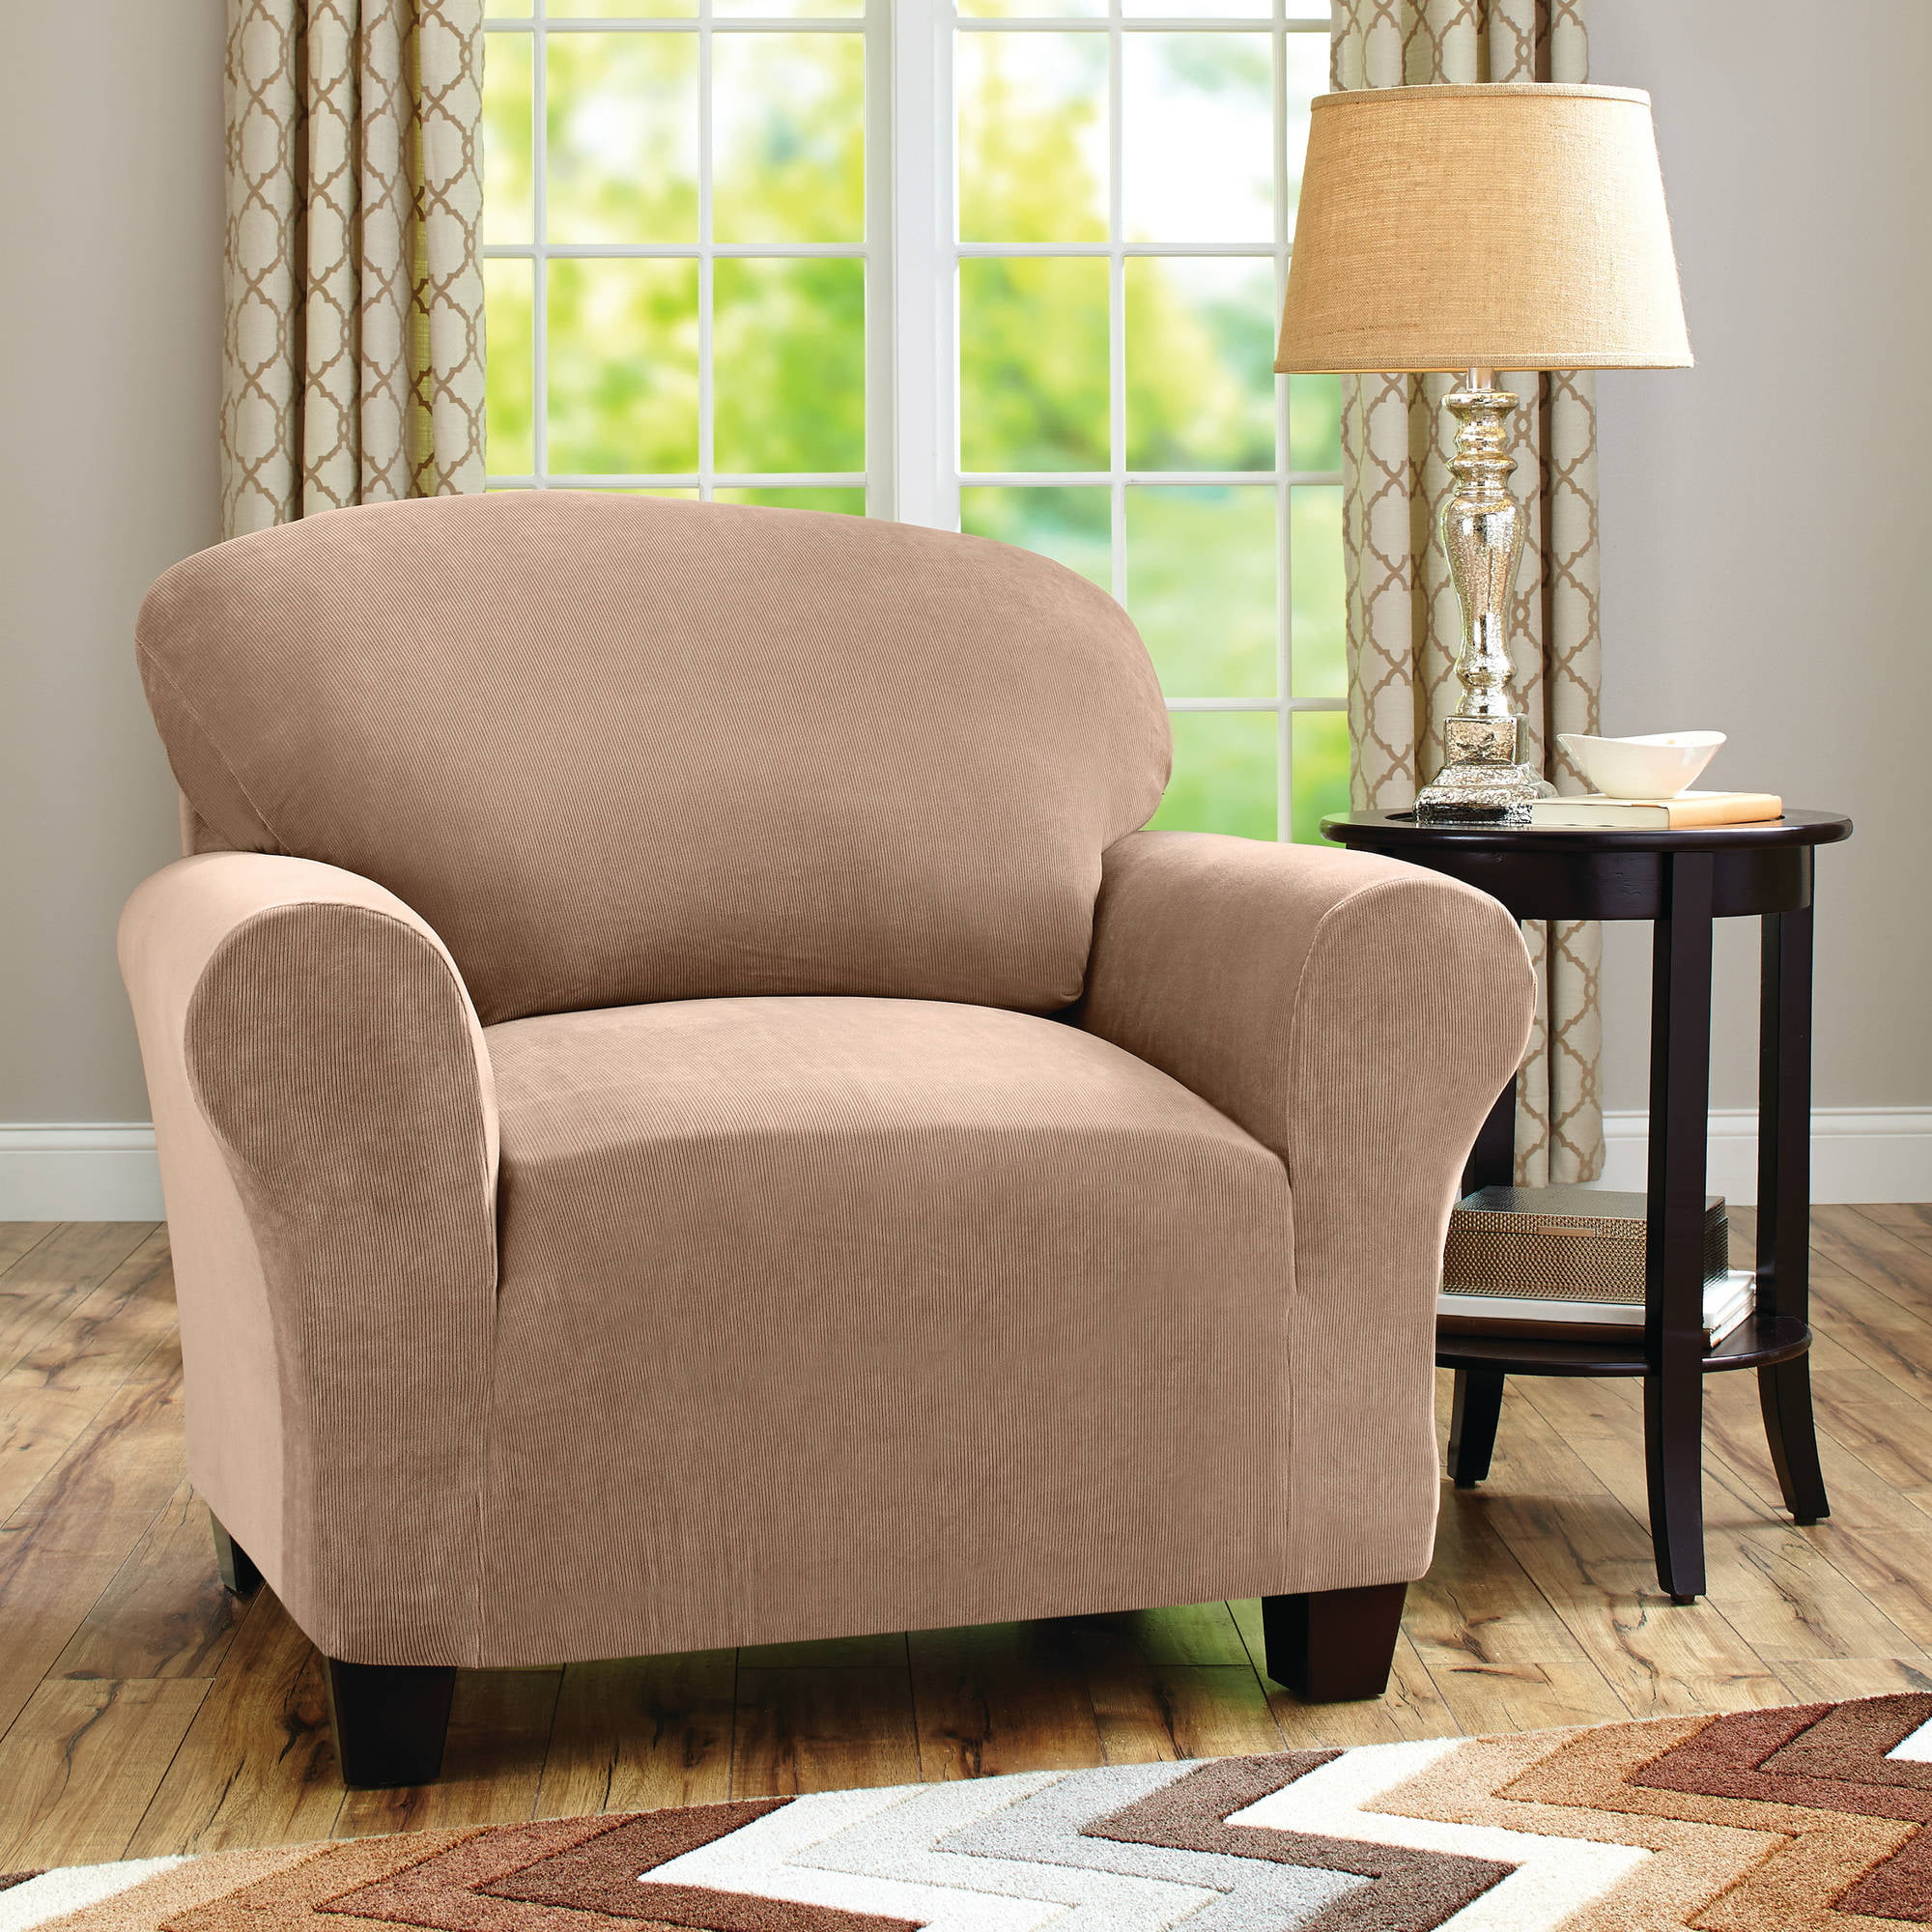 gallery for chair clear chairs parson room slipcovers seating dining skirted slipcover